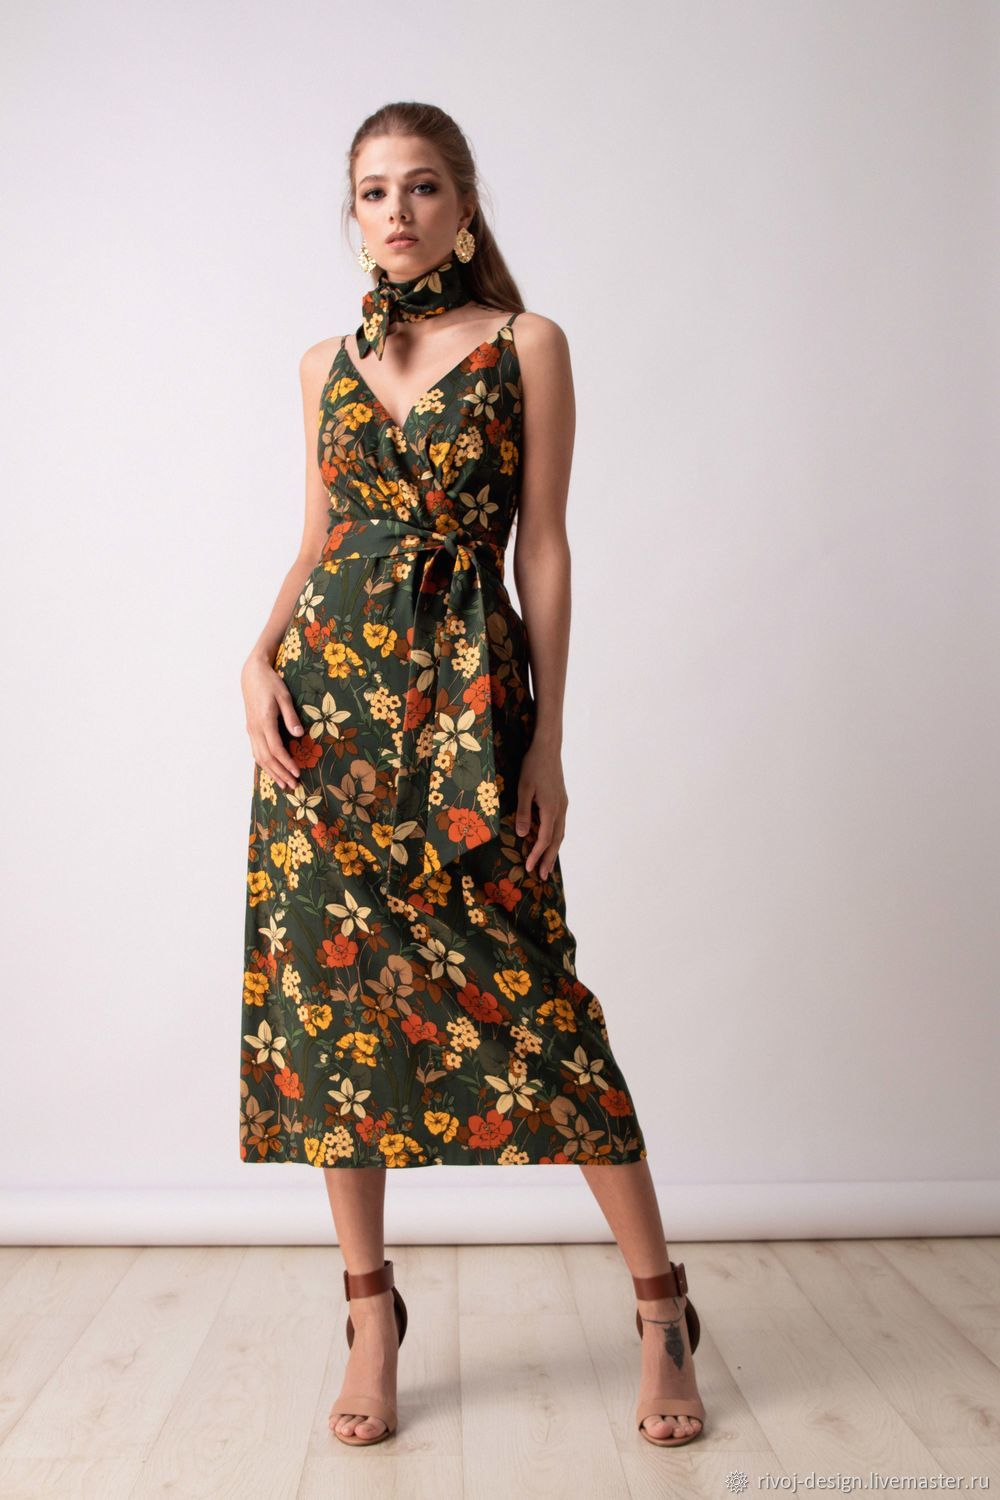 Green dress in floral print, Dresses, Moscow,  Фото №1